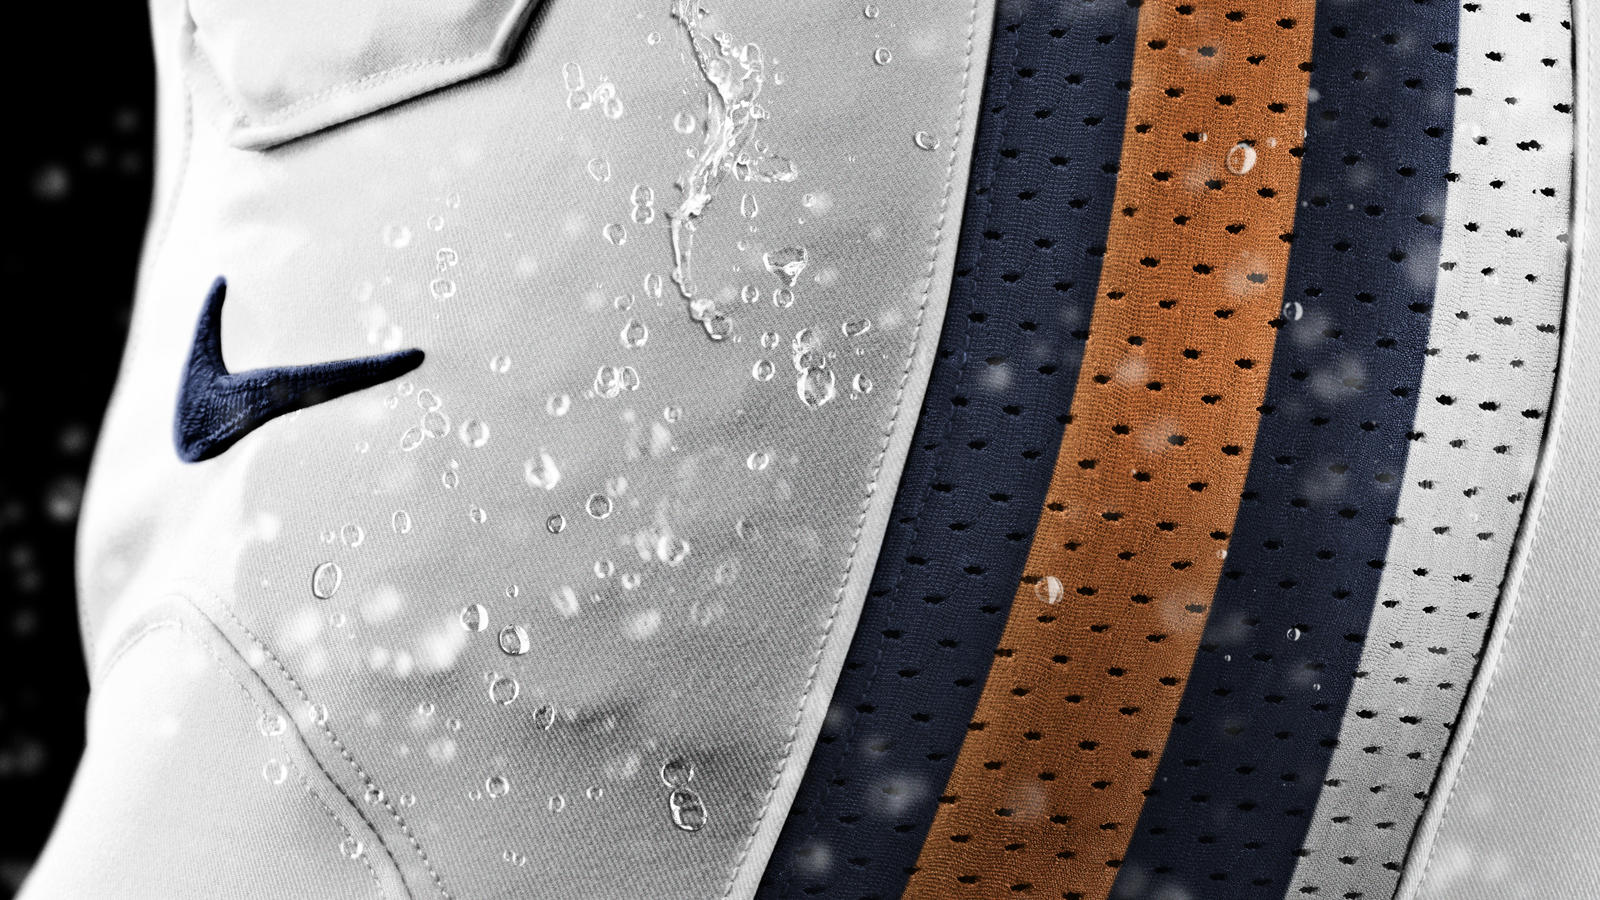 SU12_AT_NFL_UNIFORM_HYDROPHOBIC_MATERIAL_BEARS